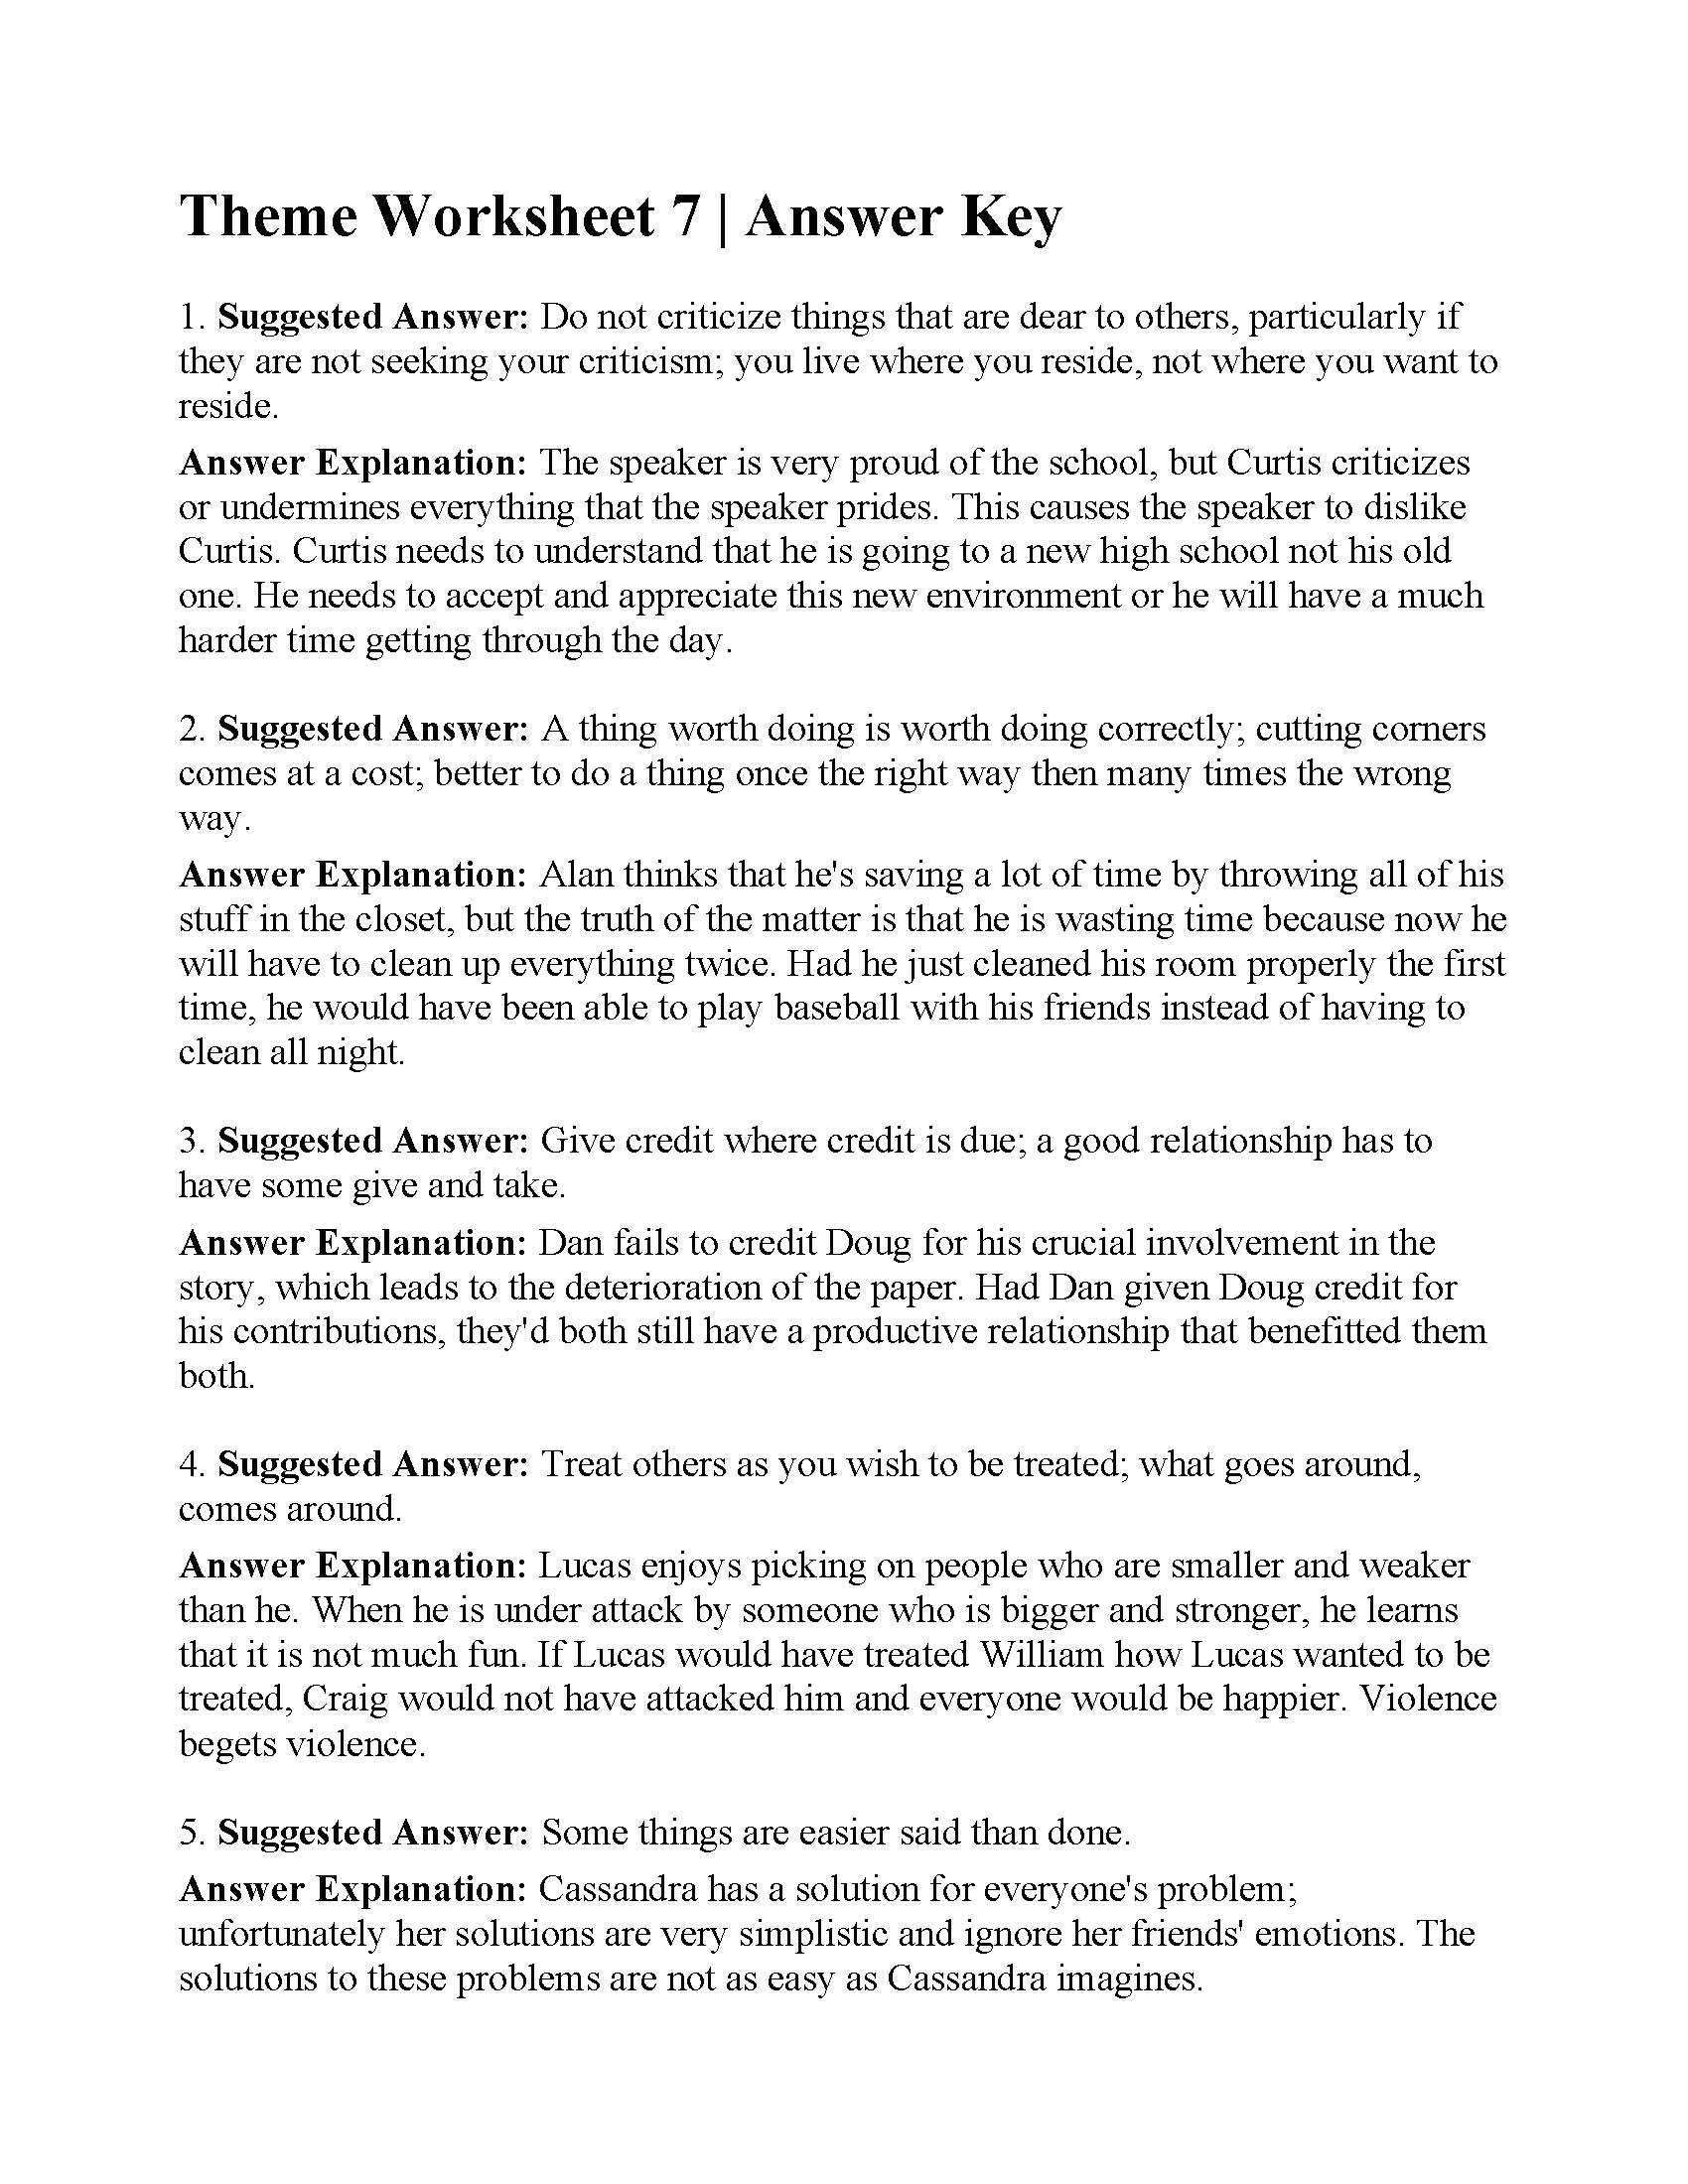 Theme Worksheets for 5th Grade theme Worksheet 7